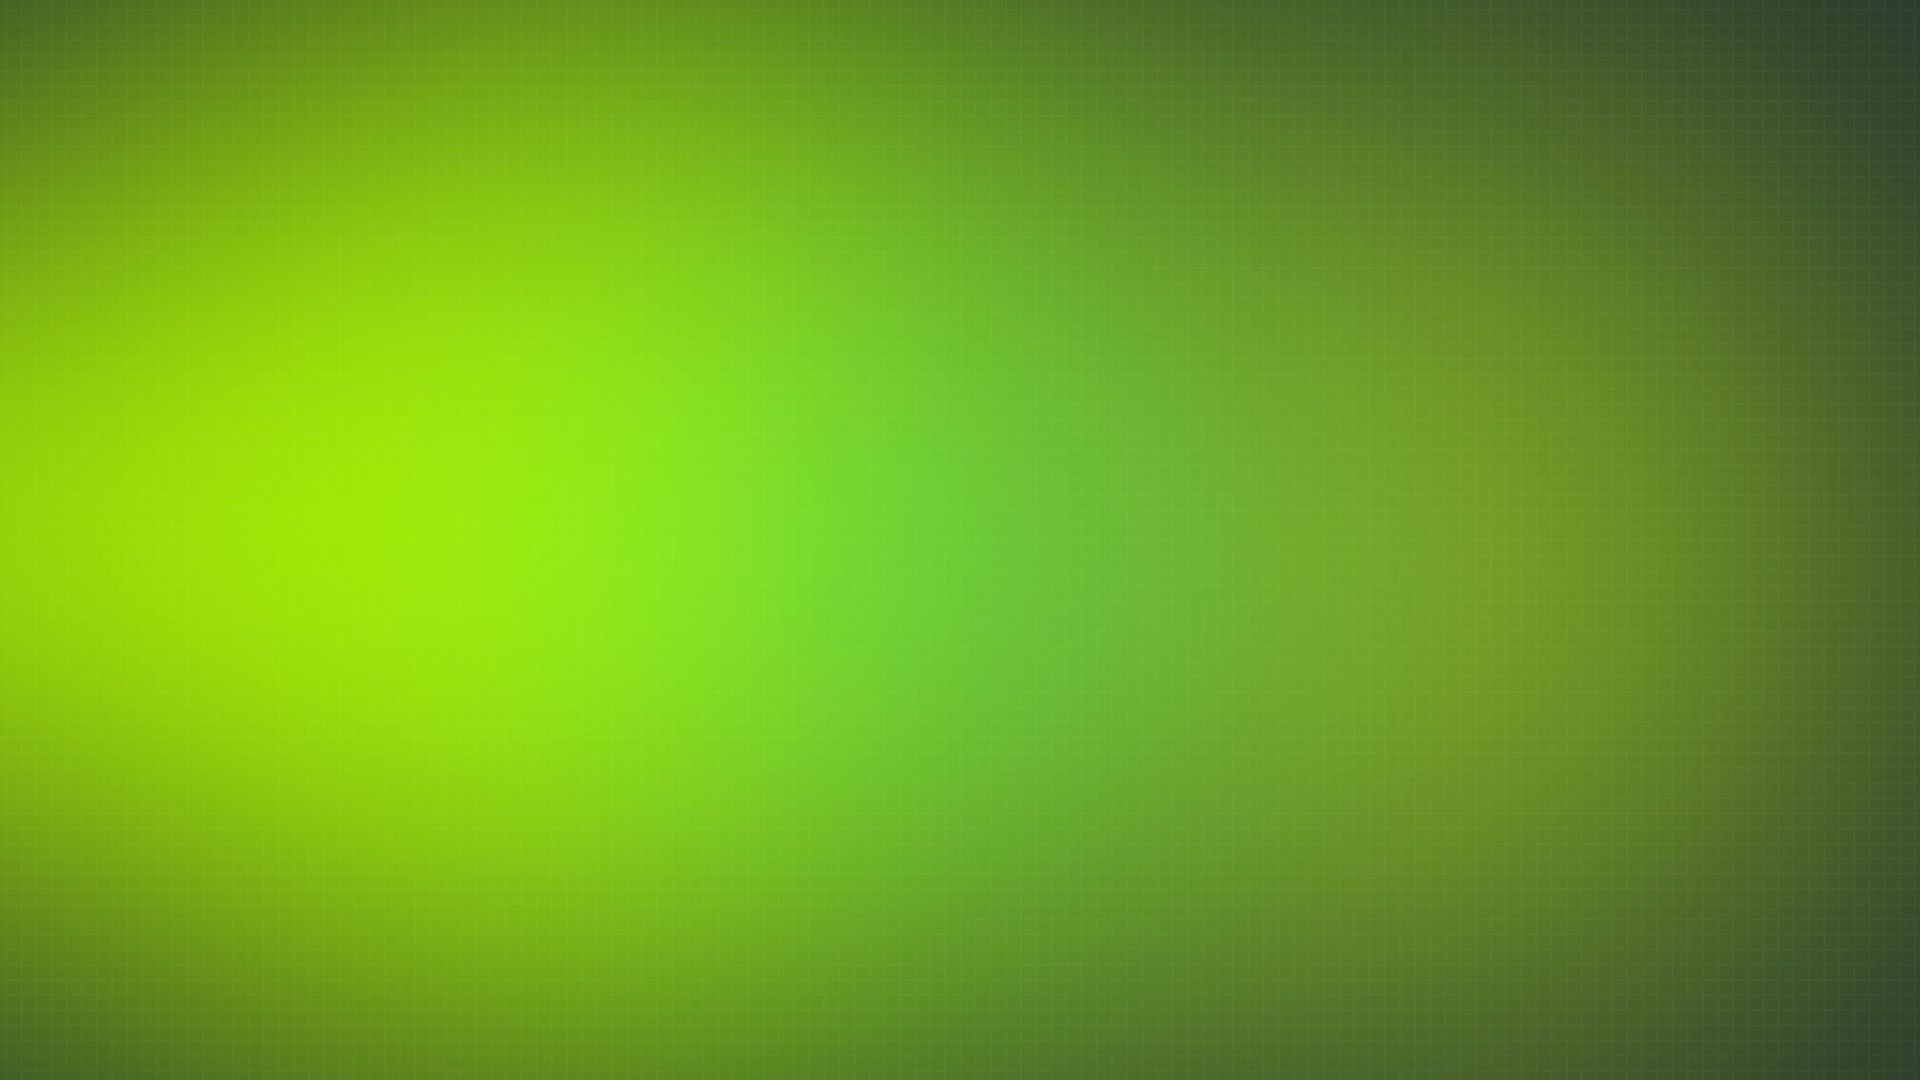 Lime Green Backgrounds 55 Pictures: Green Gradient Background Wallpaper